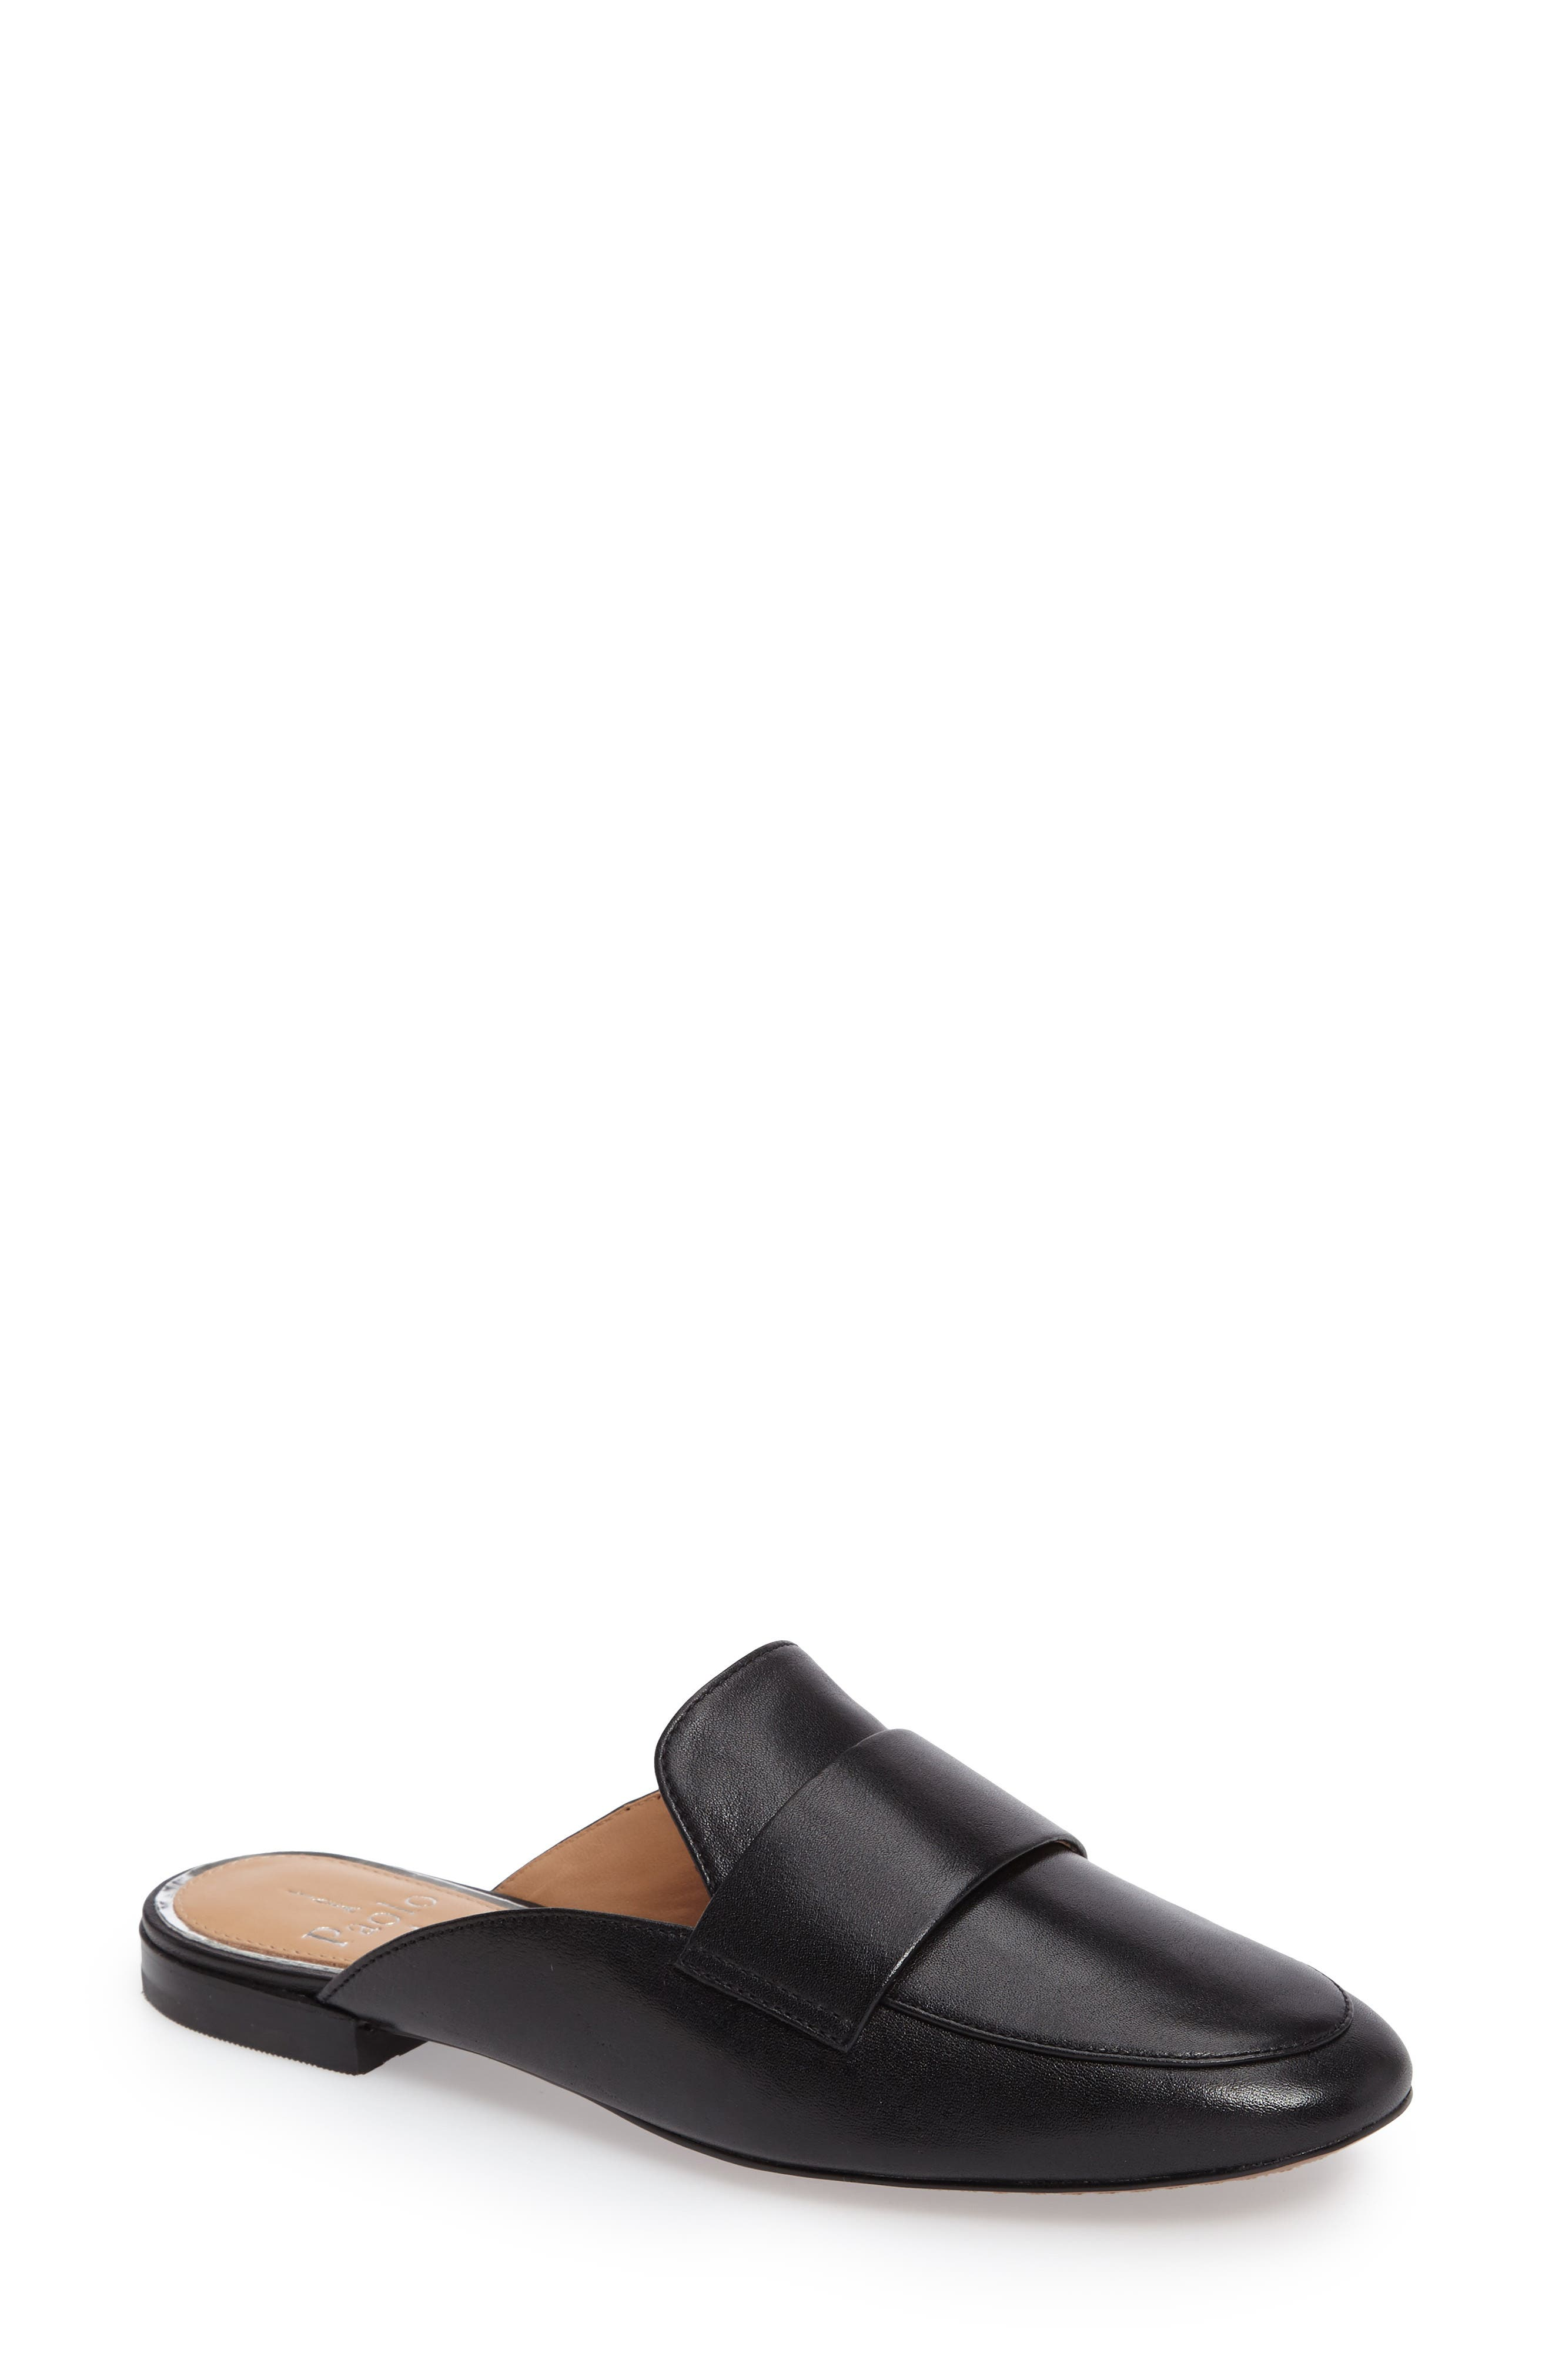 Linea Paolo Annie Loafer Mule- Black